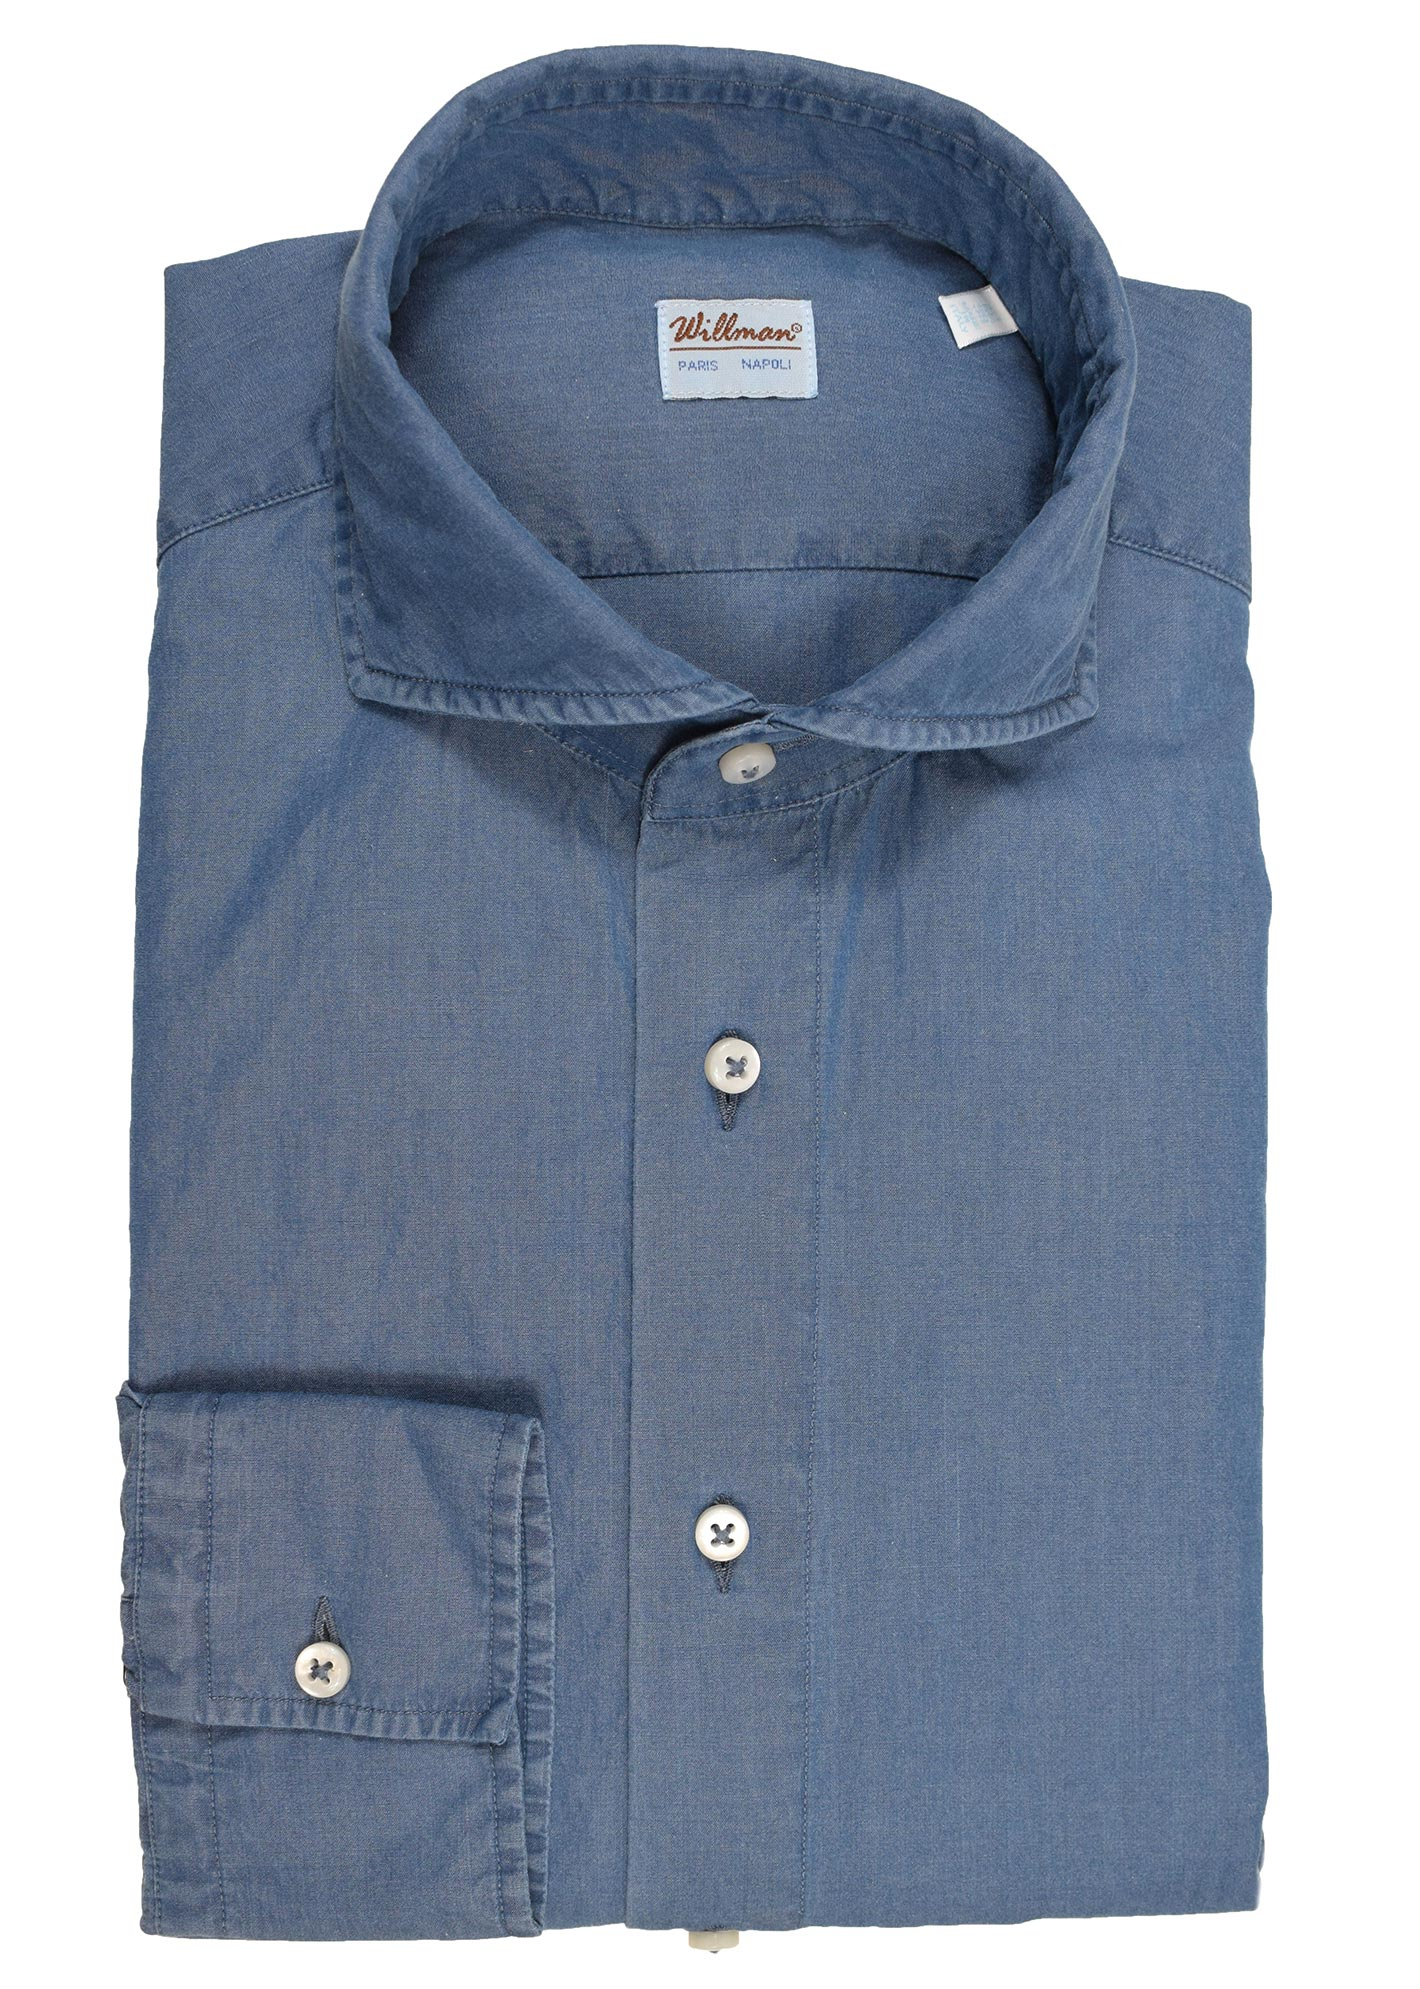 23WCH - Chemise coton chambray bleue